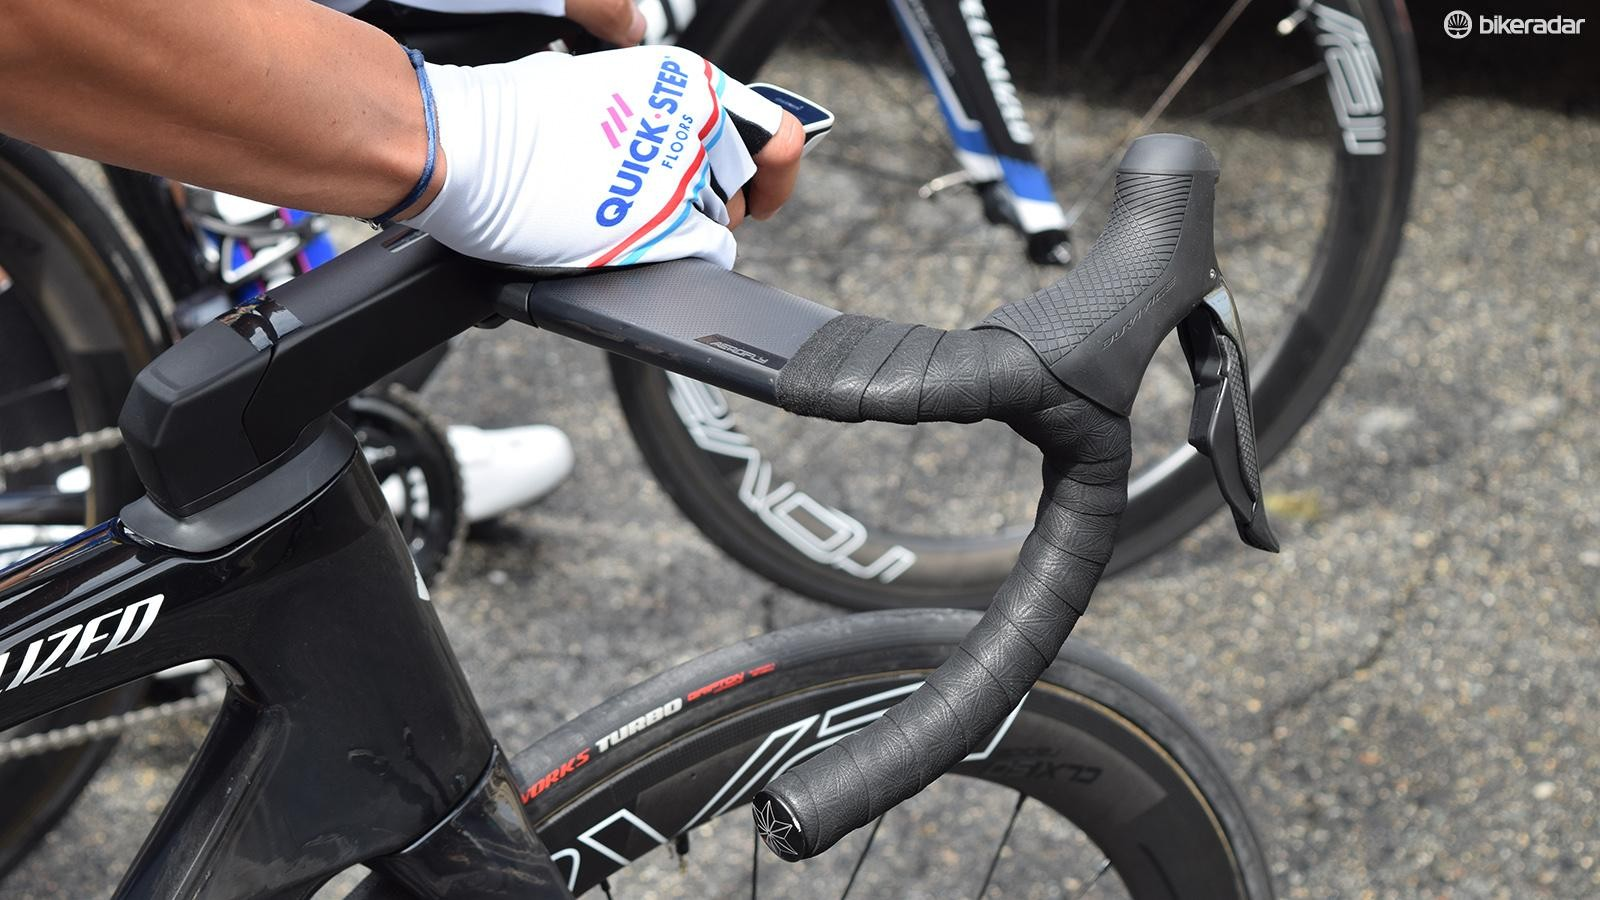 The flat-topped Aerofly bars have a tradional design of an aero handlebar